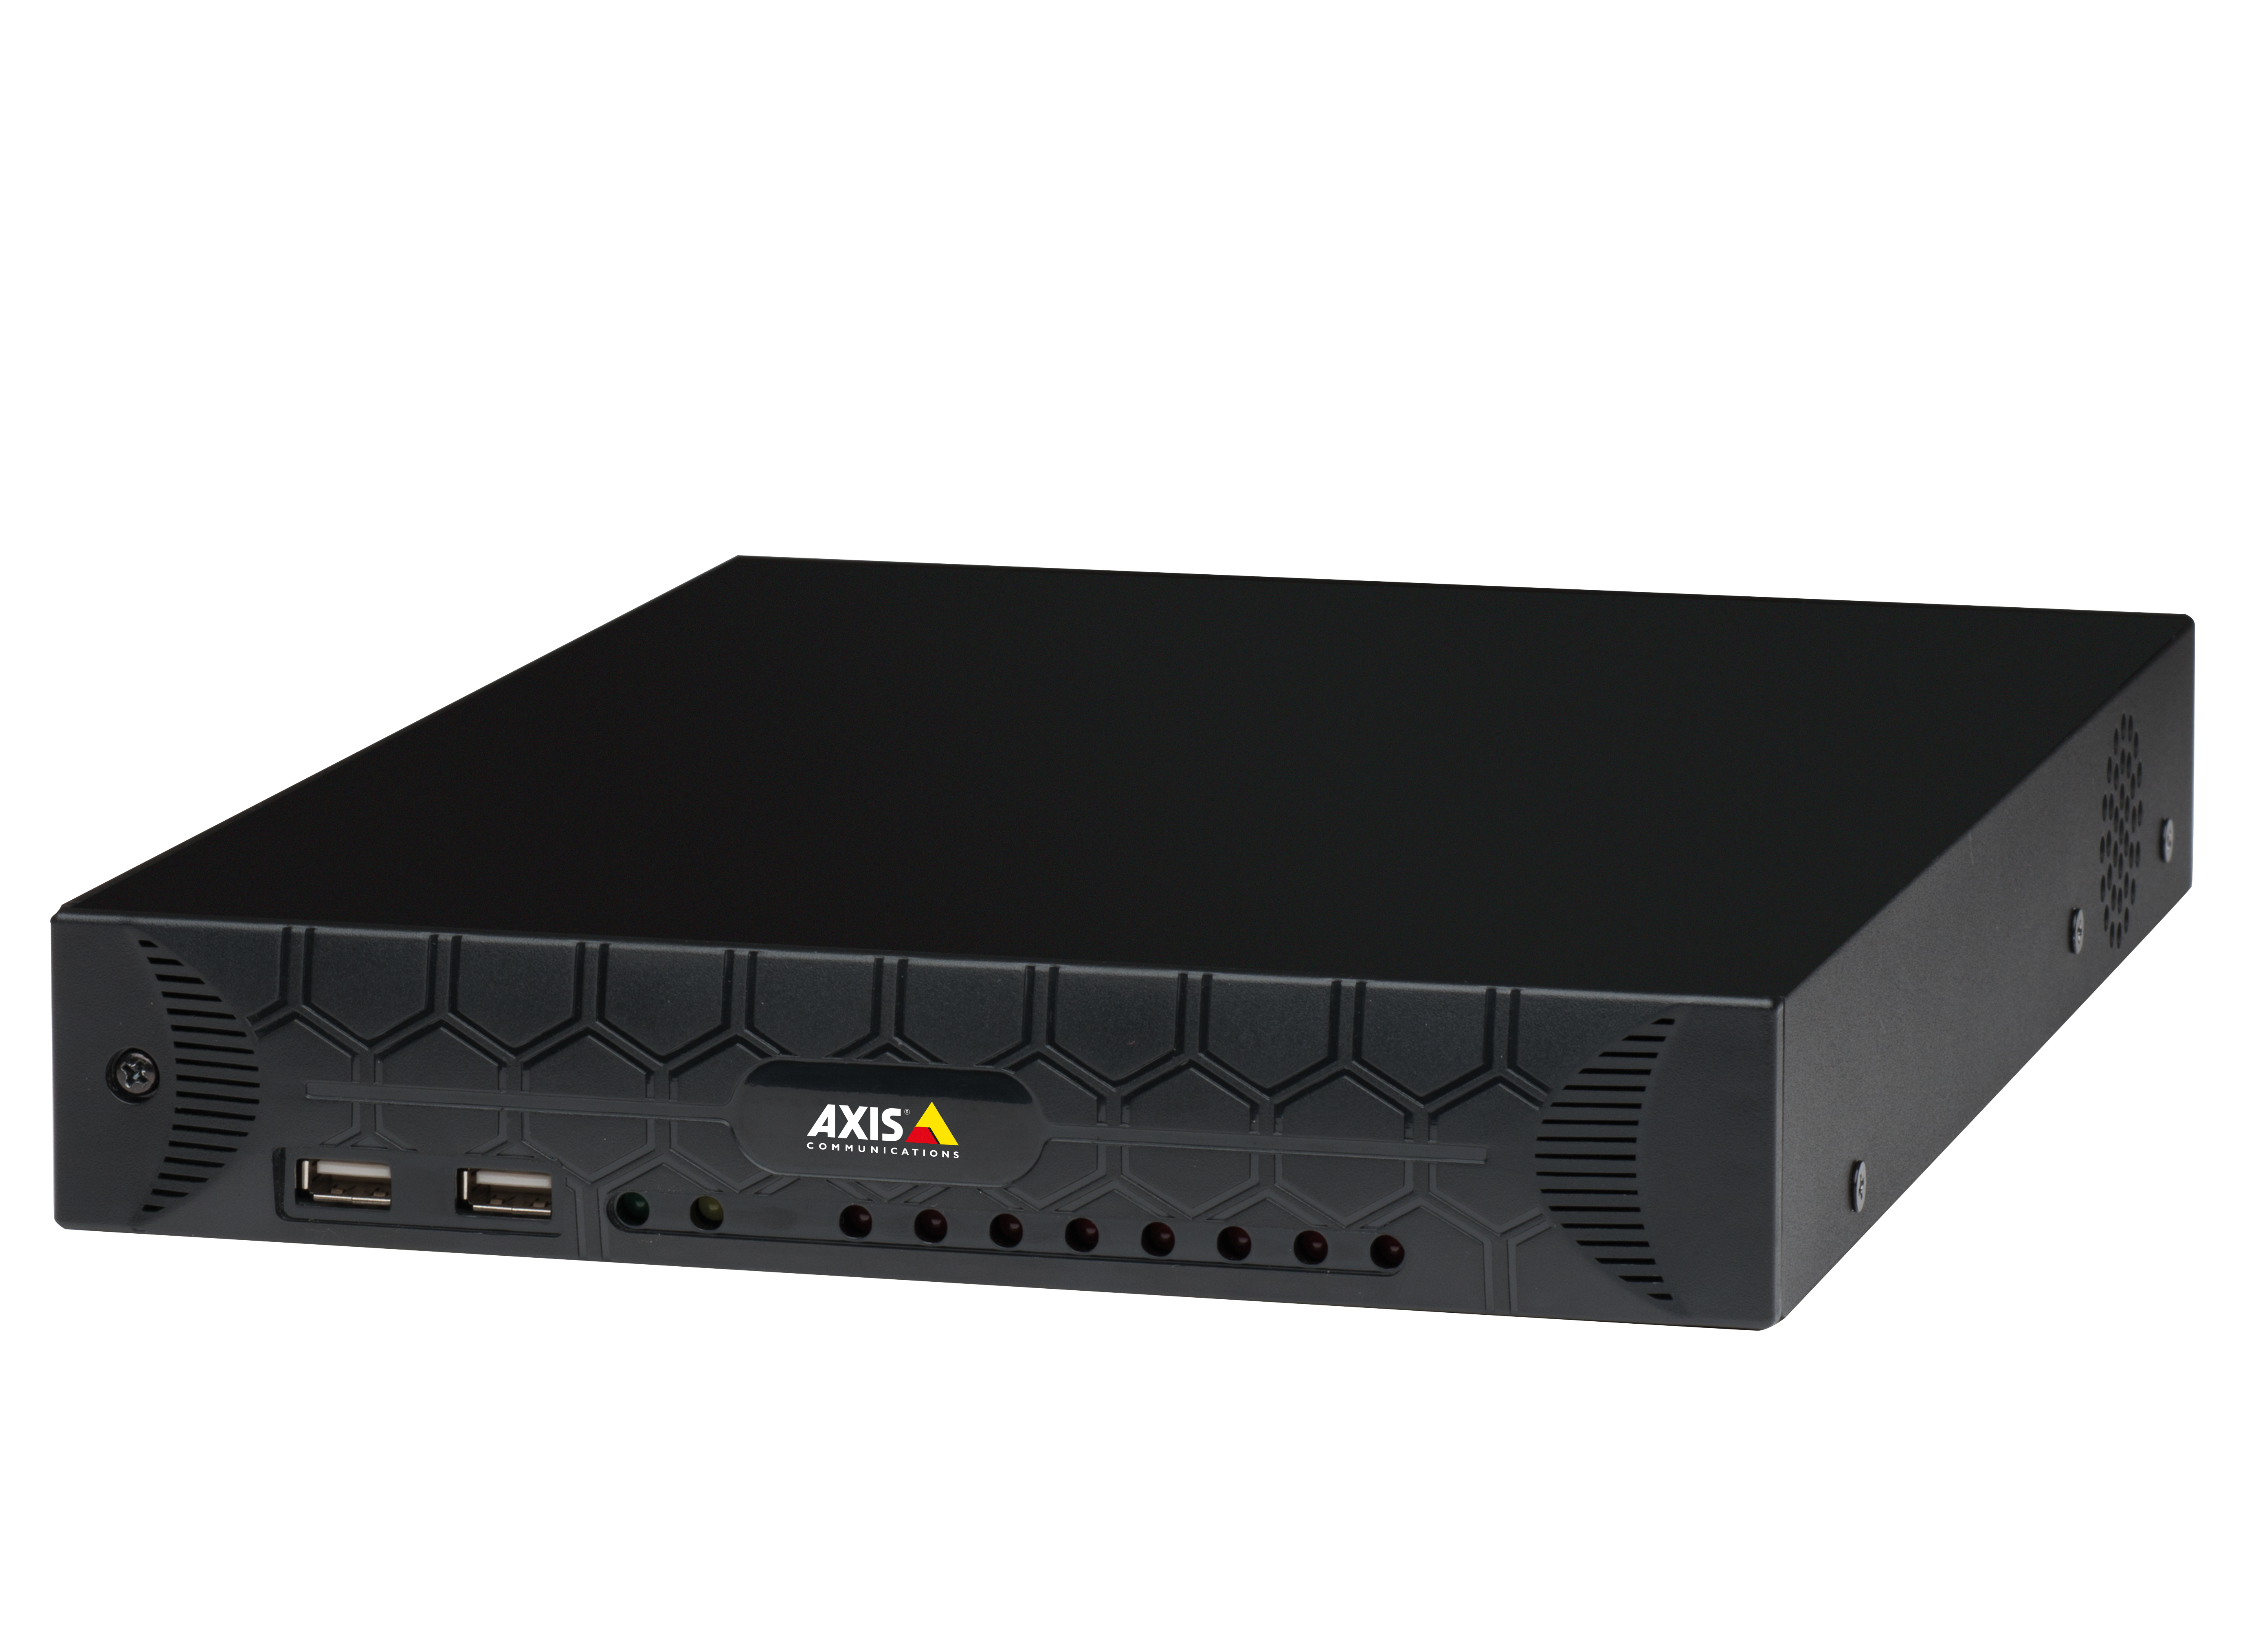 Axis S2008 All In One Camera Station With Nvr Amp Poe Switch